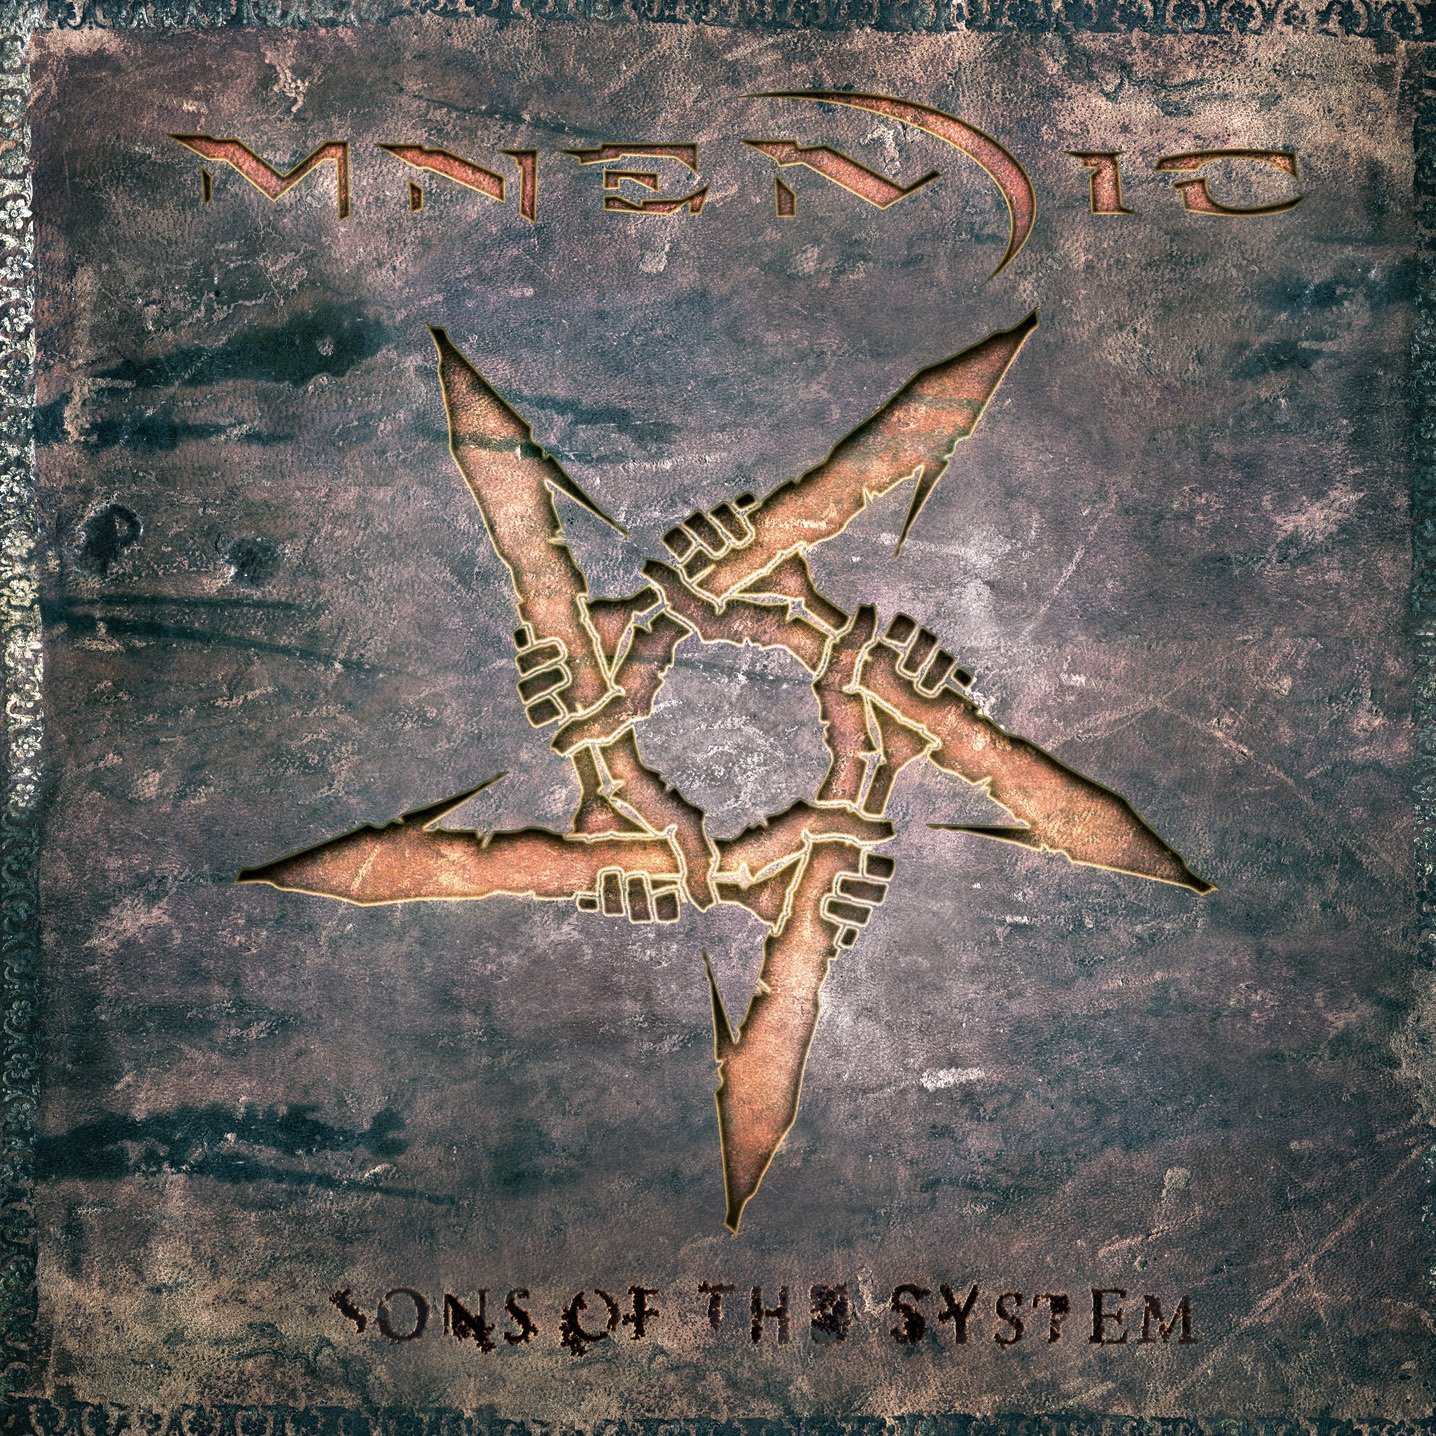 Mnemic – Sons of the System Review